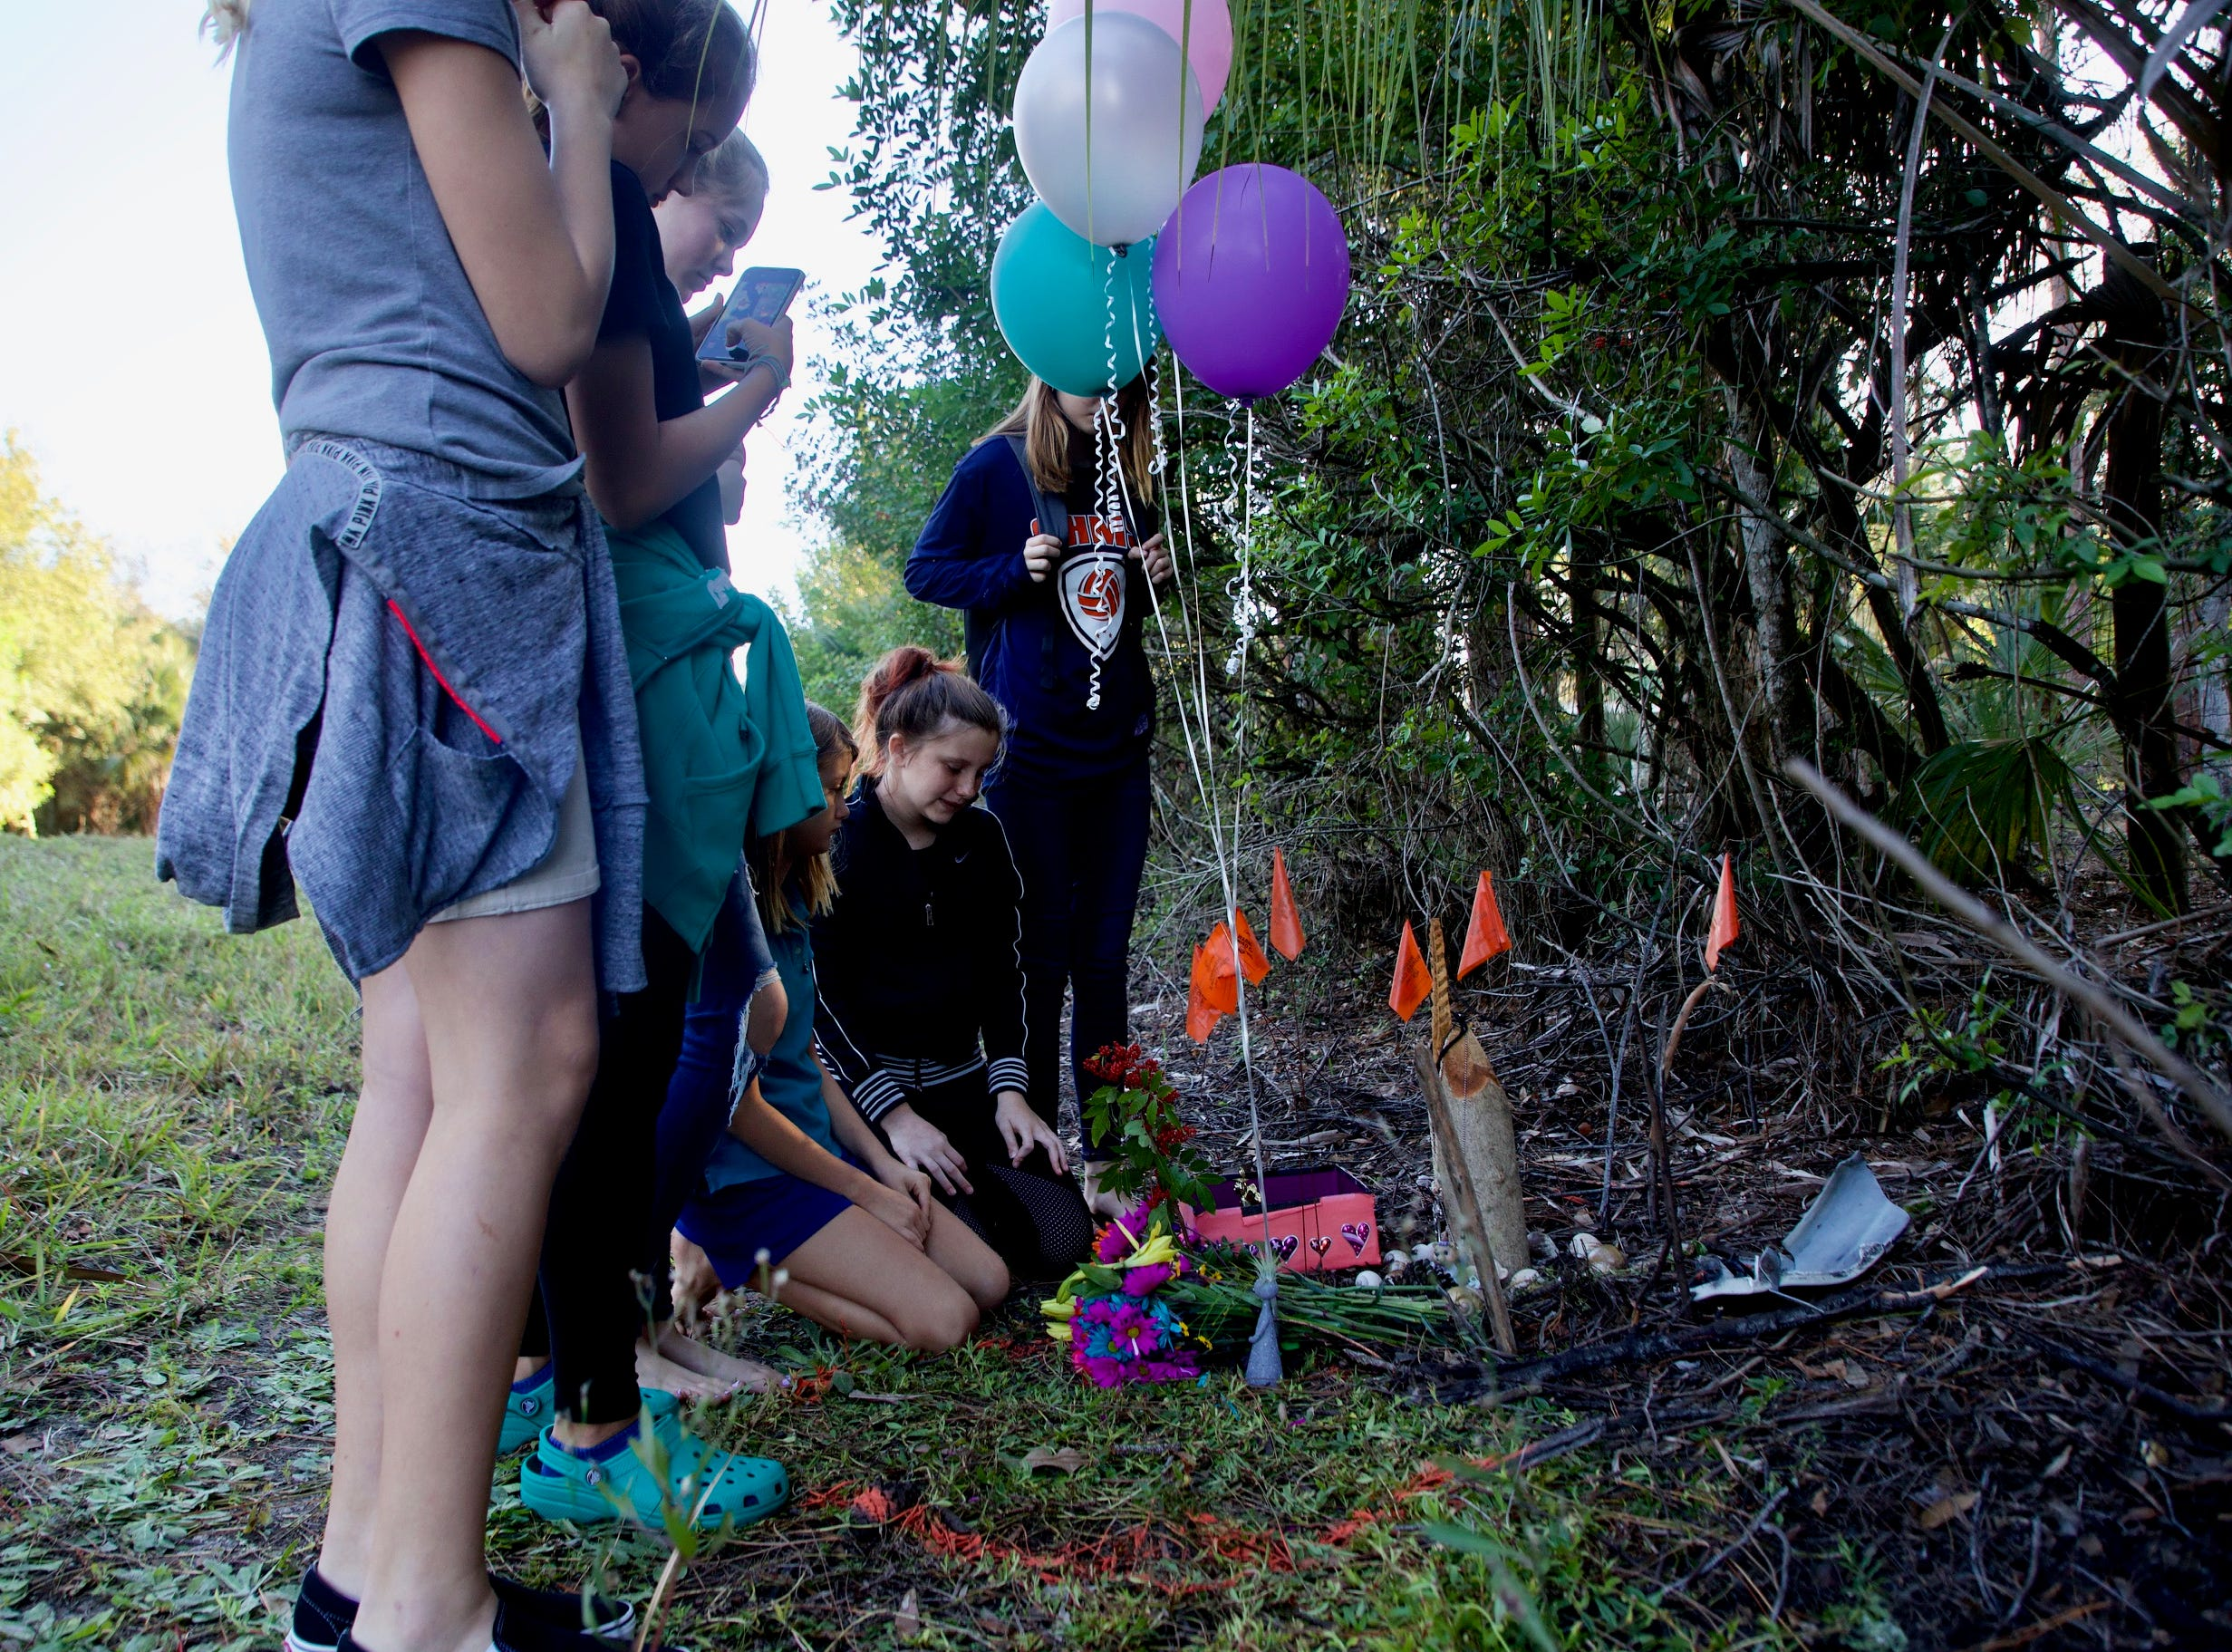 Family and friends of Alana Maria Tamplin, 12, including her sister Brooklynn, 9, kneeling and best friend Brooklyn Davis, also kneeling, pay their respects at a memorial site on Durrance Road. Tamplin was killed by a driver while walking home from a bus stop after dropping Brooklynn off. Her friend Brooklyn was also with her.